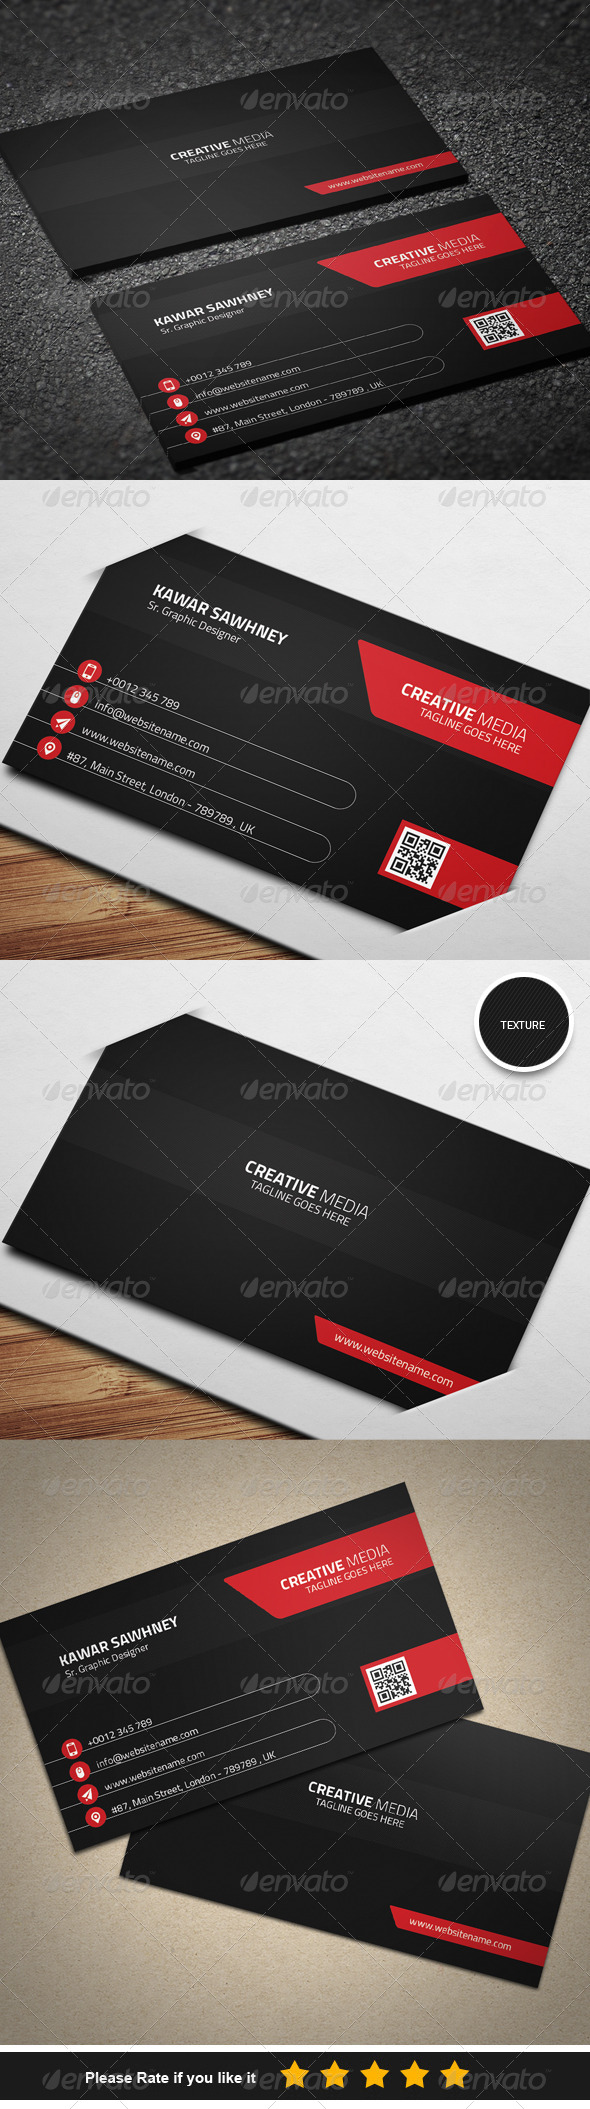 GraphicRiver Corporate Business Card 7 8334444